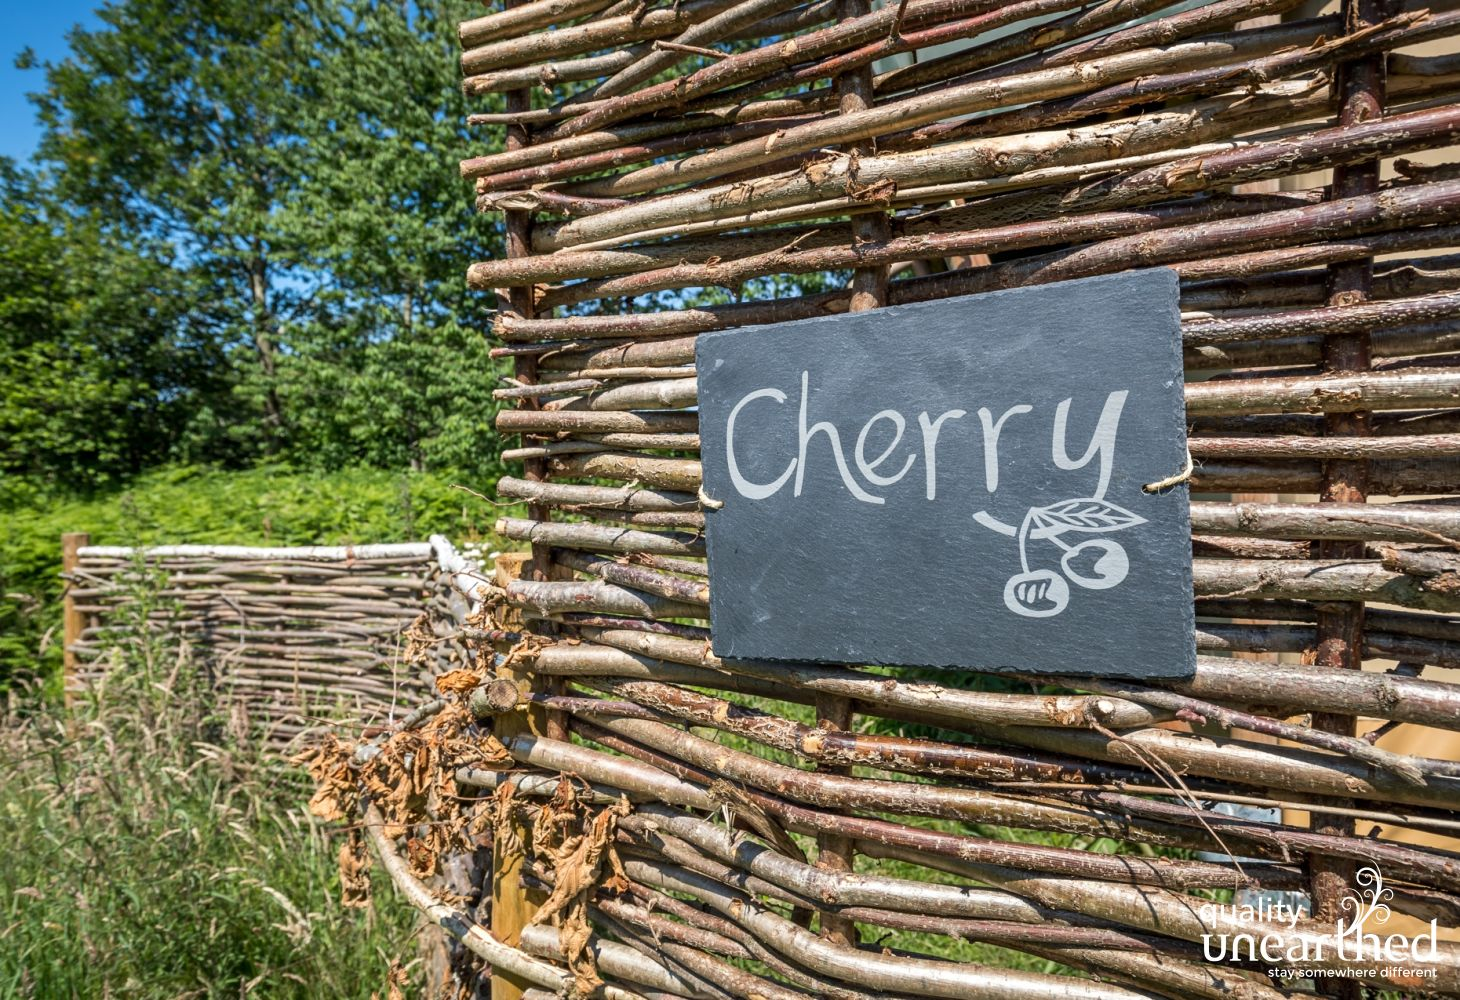 Cherry Safari in Monmouthshire